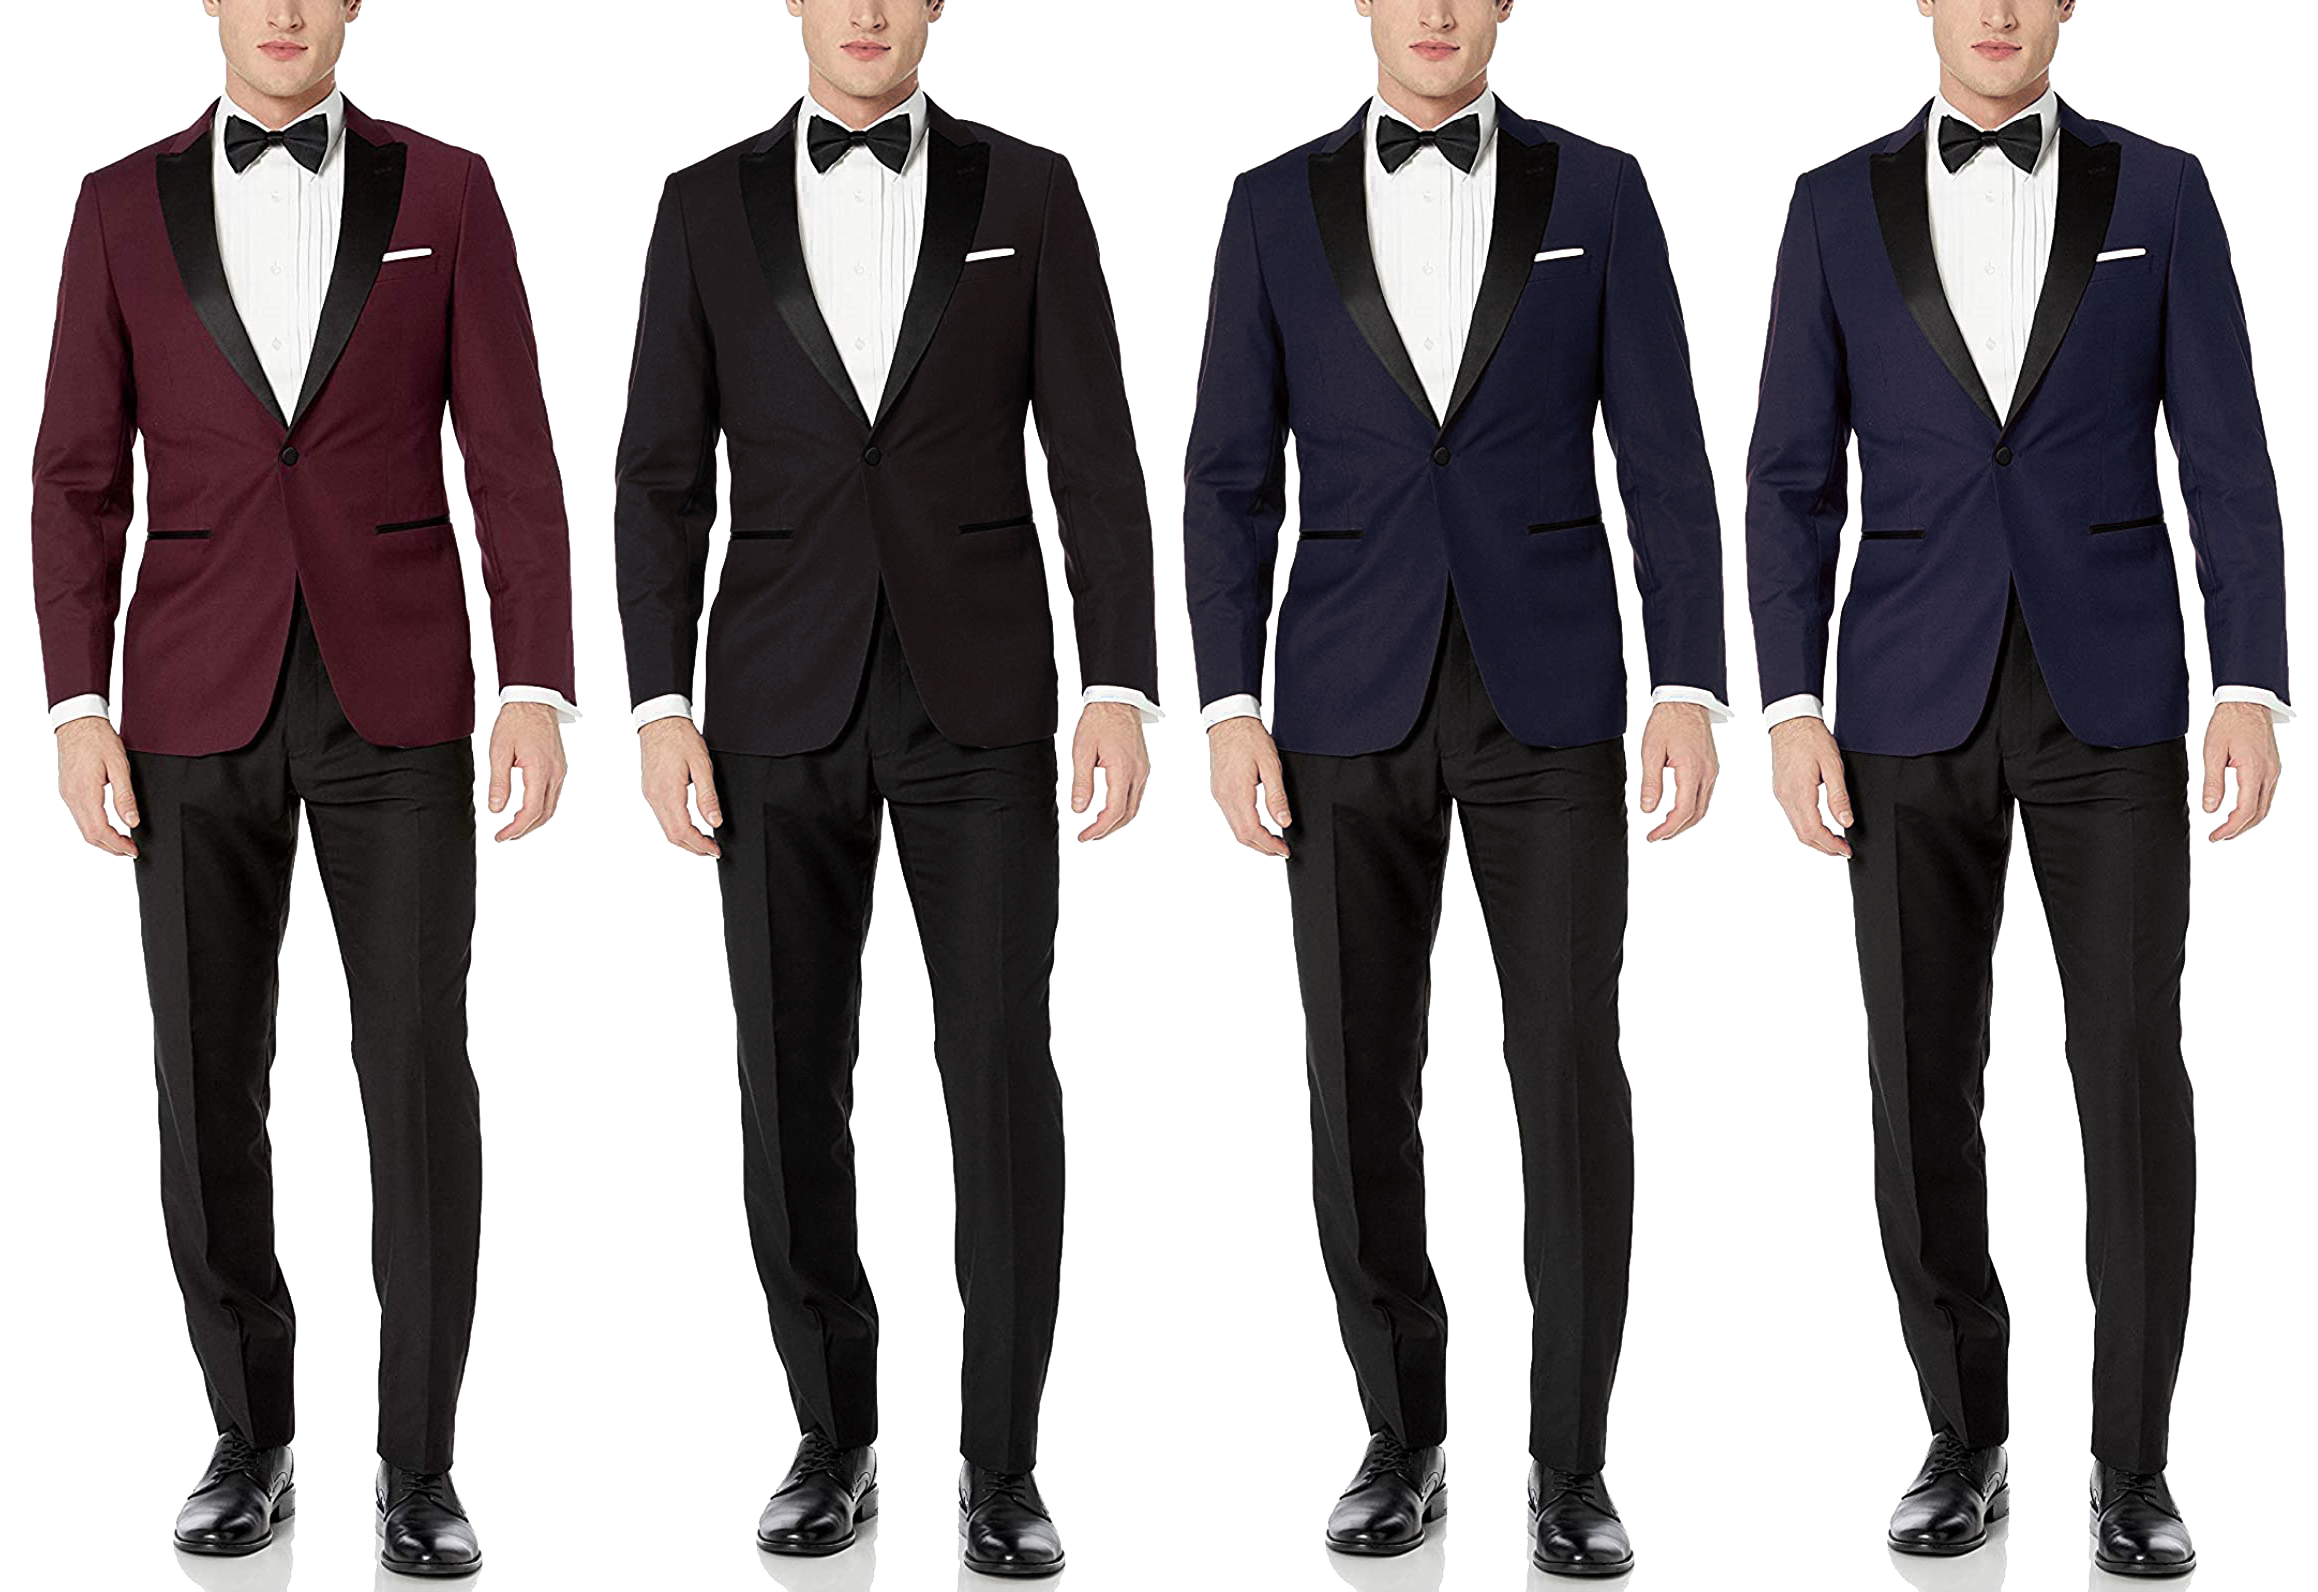 different tuxedo color choices and combinations